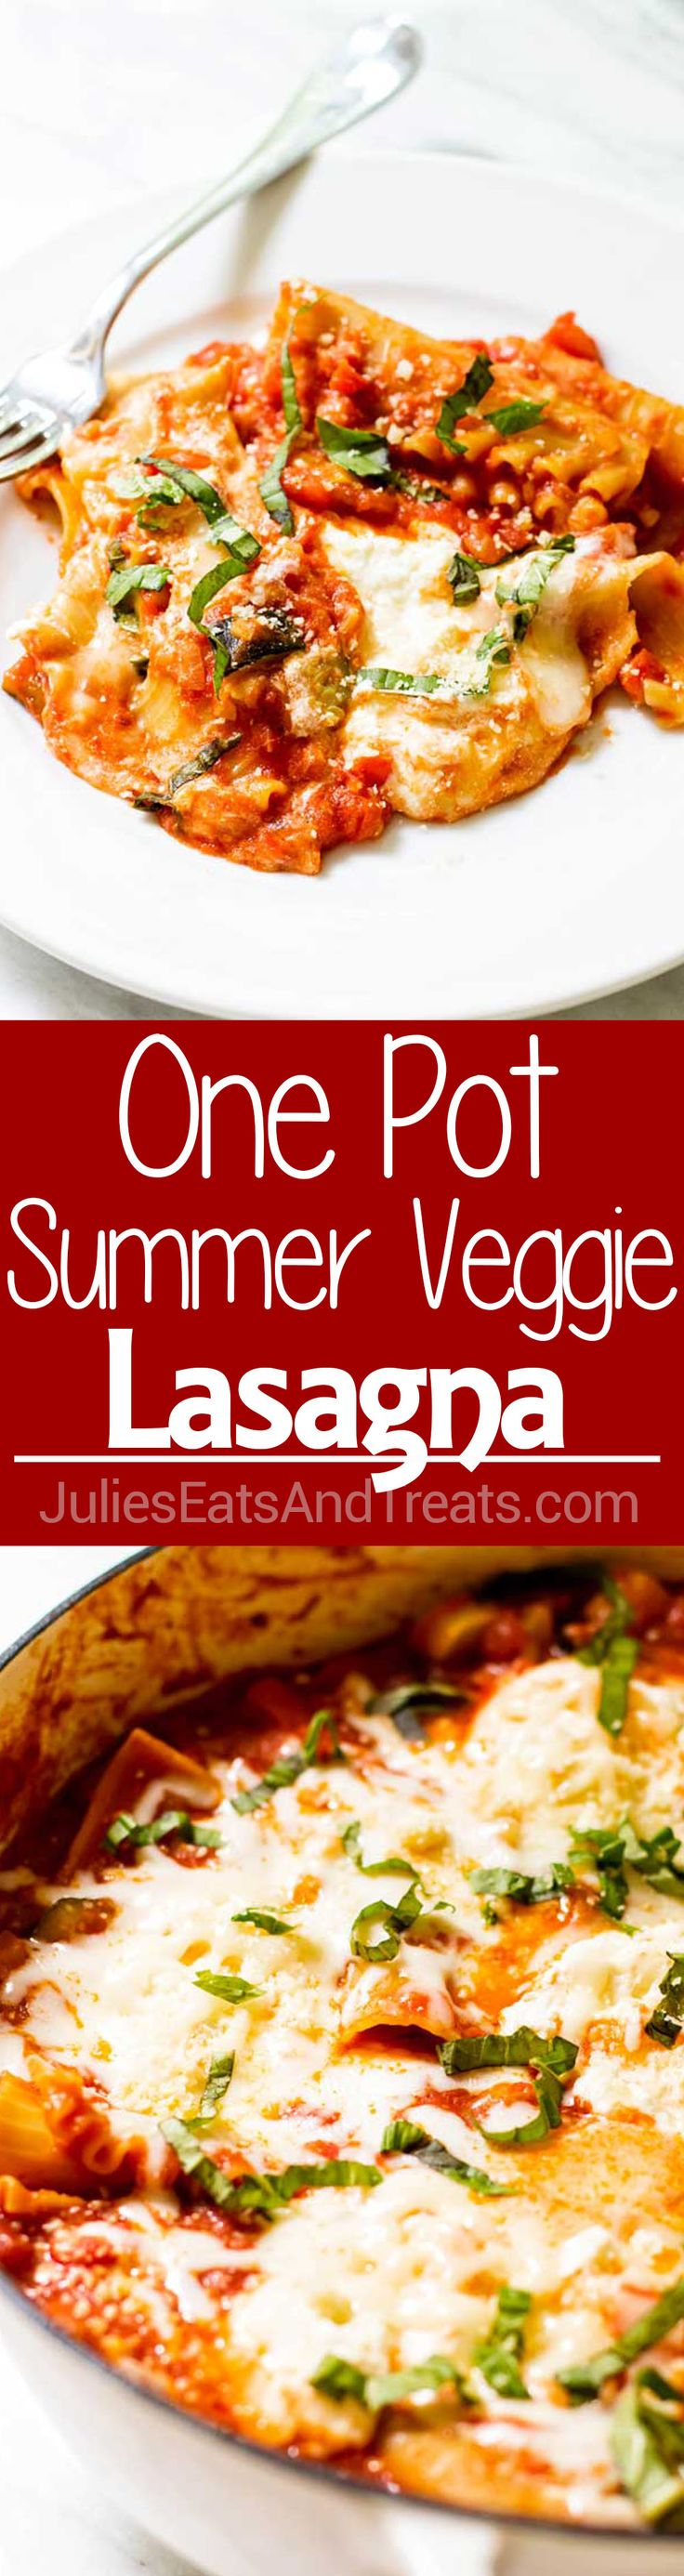 Summer Vegetable One Pot Lasagna ~ An easy one pan lasagna with summer fresh vegetables, creamy melted cheese and tender pasta. It's the summer version of a classic comfort food dish that takes just 40 minutes! Summer eating has never been so easy! via @julieseats